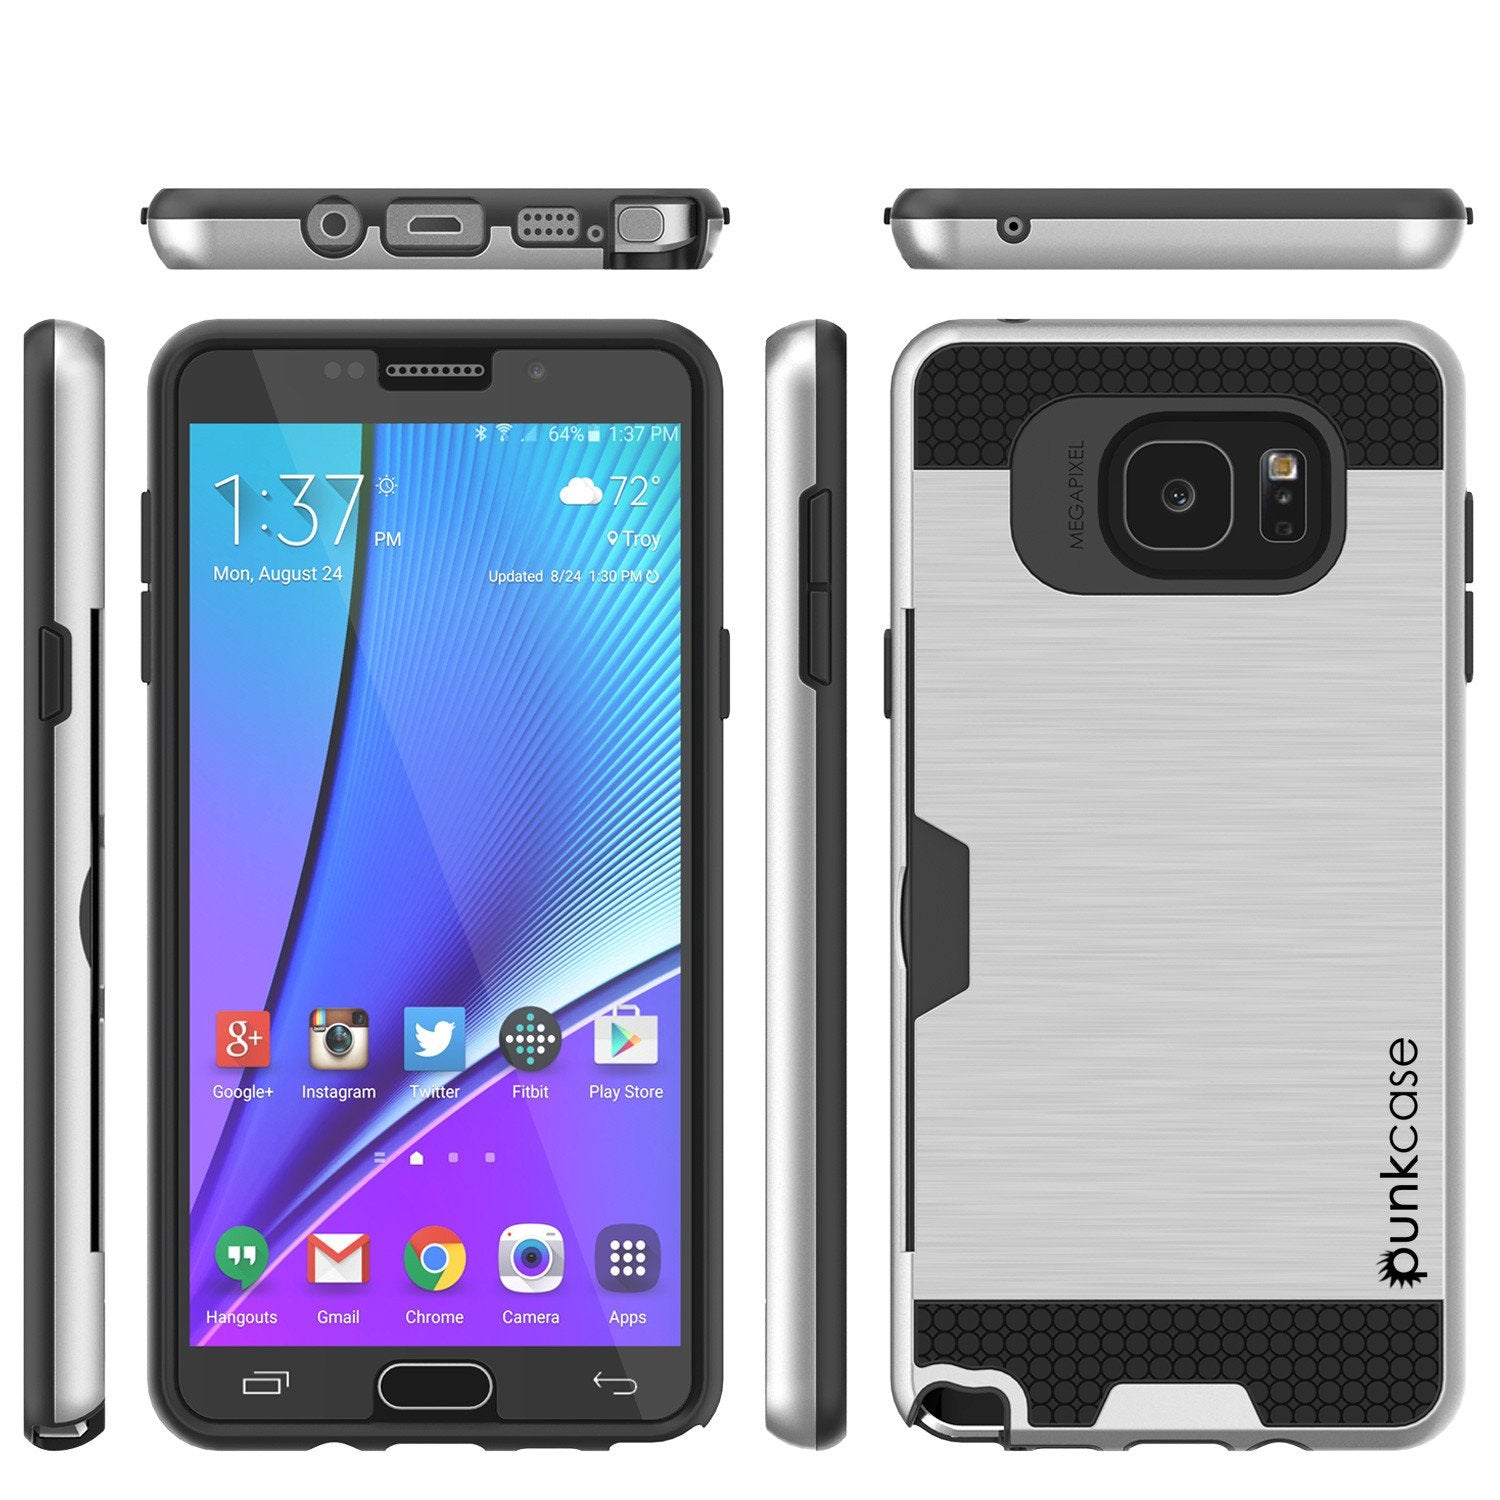 Galaxy Note 5 Case PunkCase SLOT Silver Series Slim Armor Soft Cover Case w/ Tempered Glass